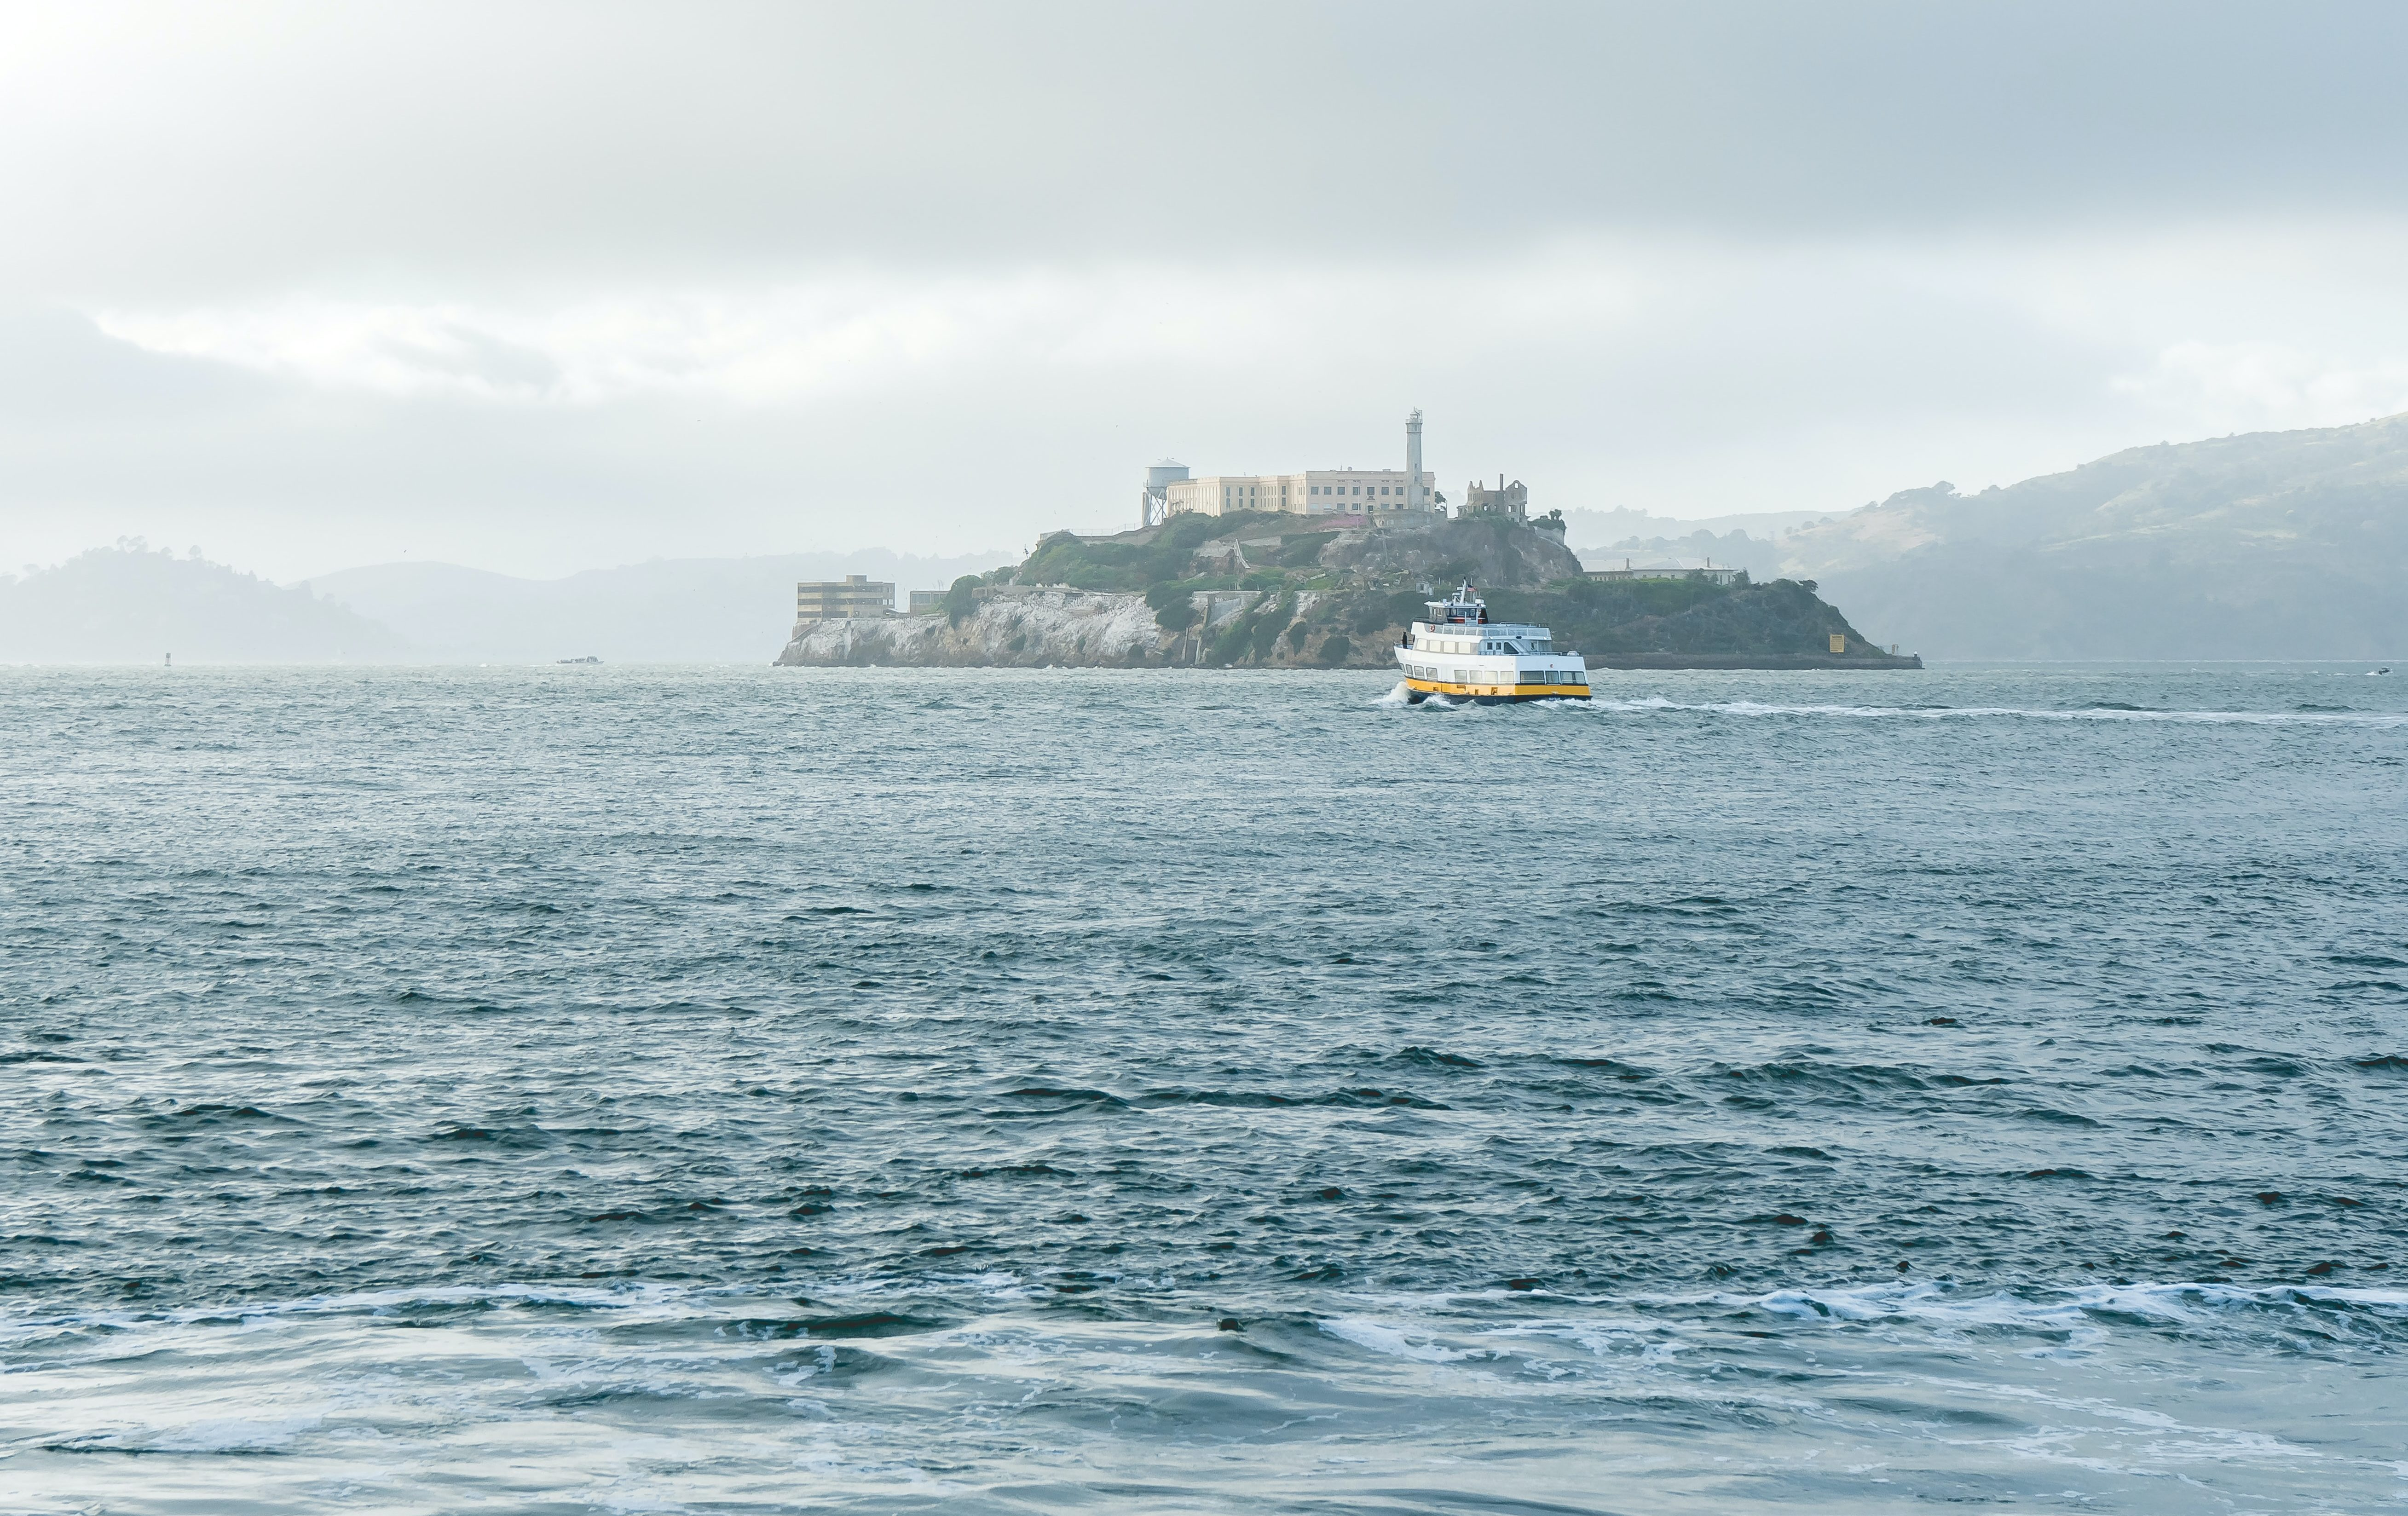 alcatraz island seen from a distance at Fisherman's Wharf